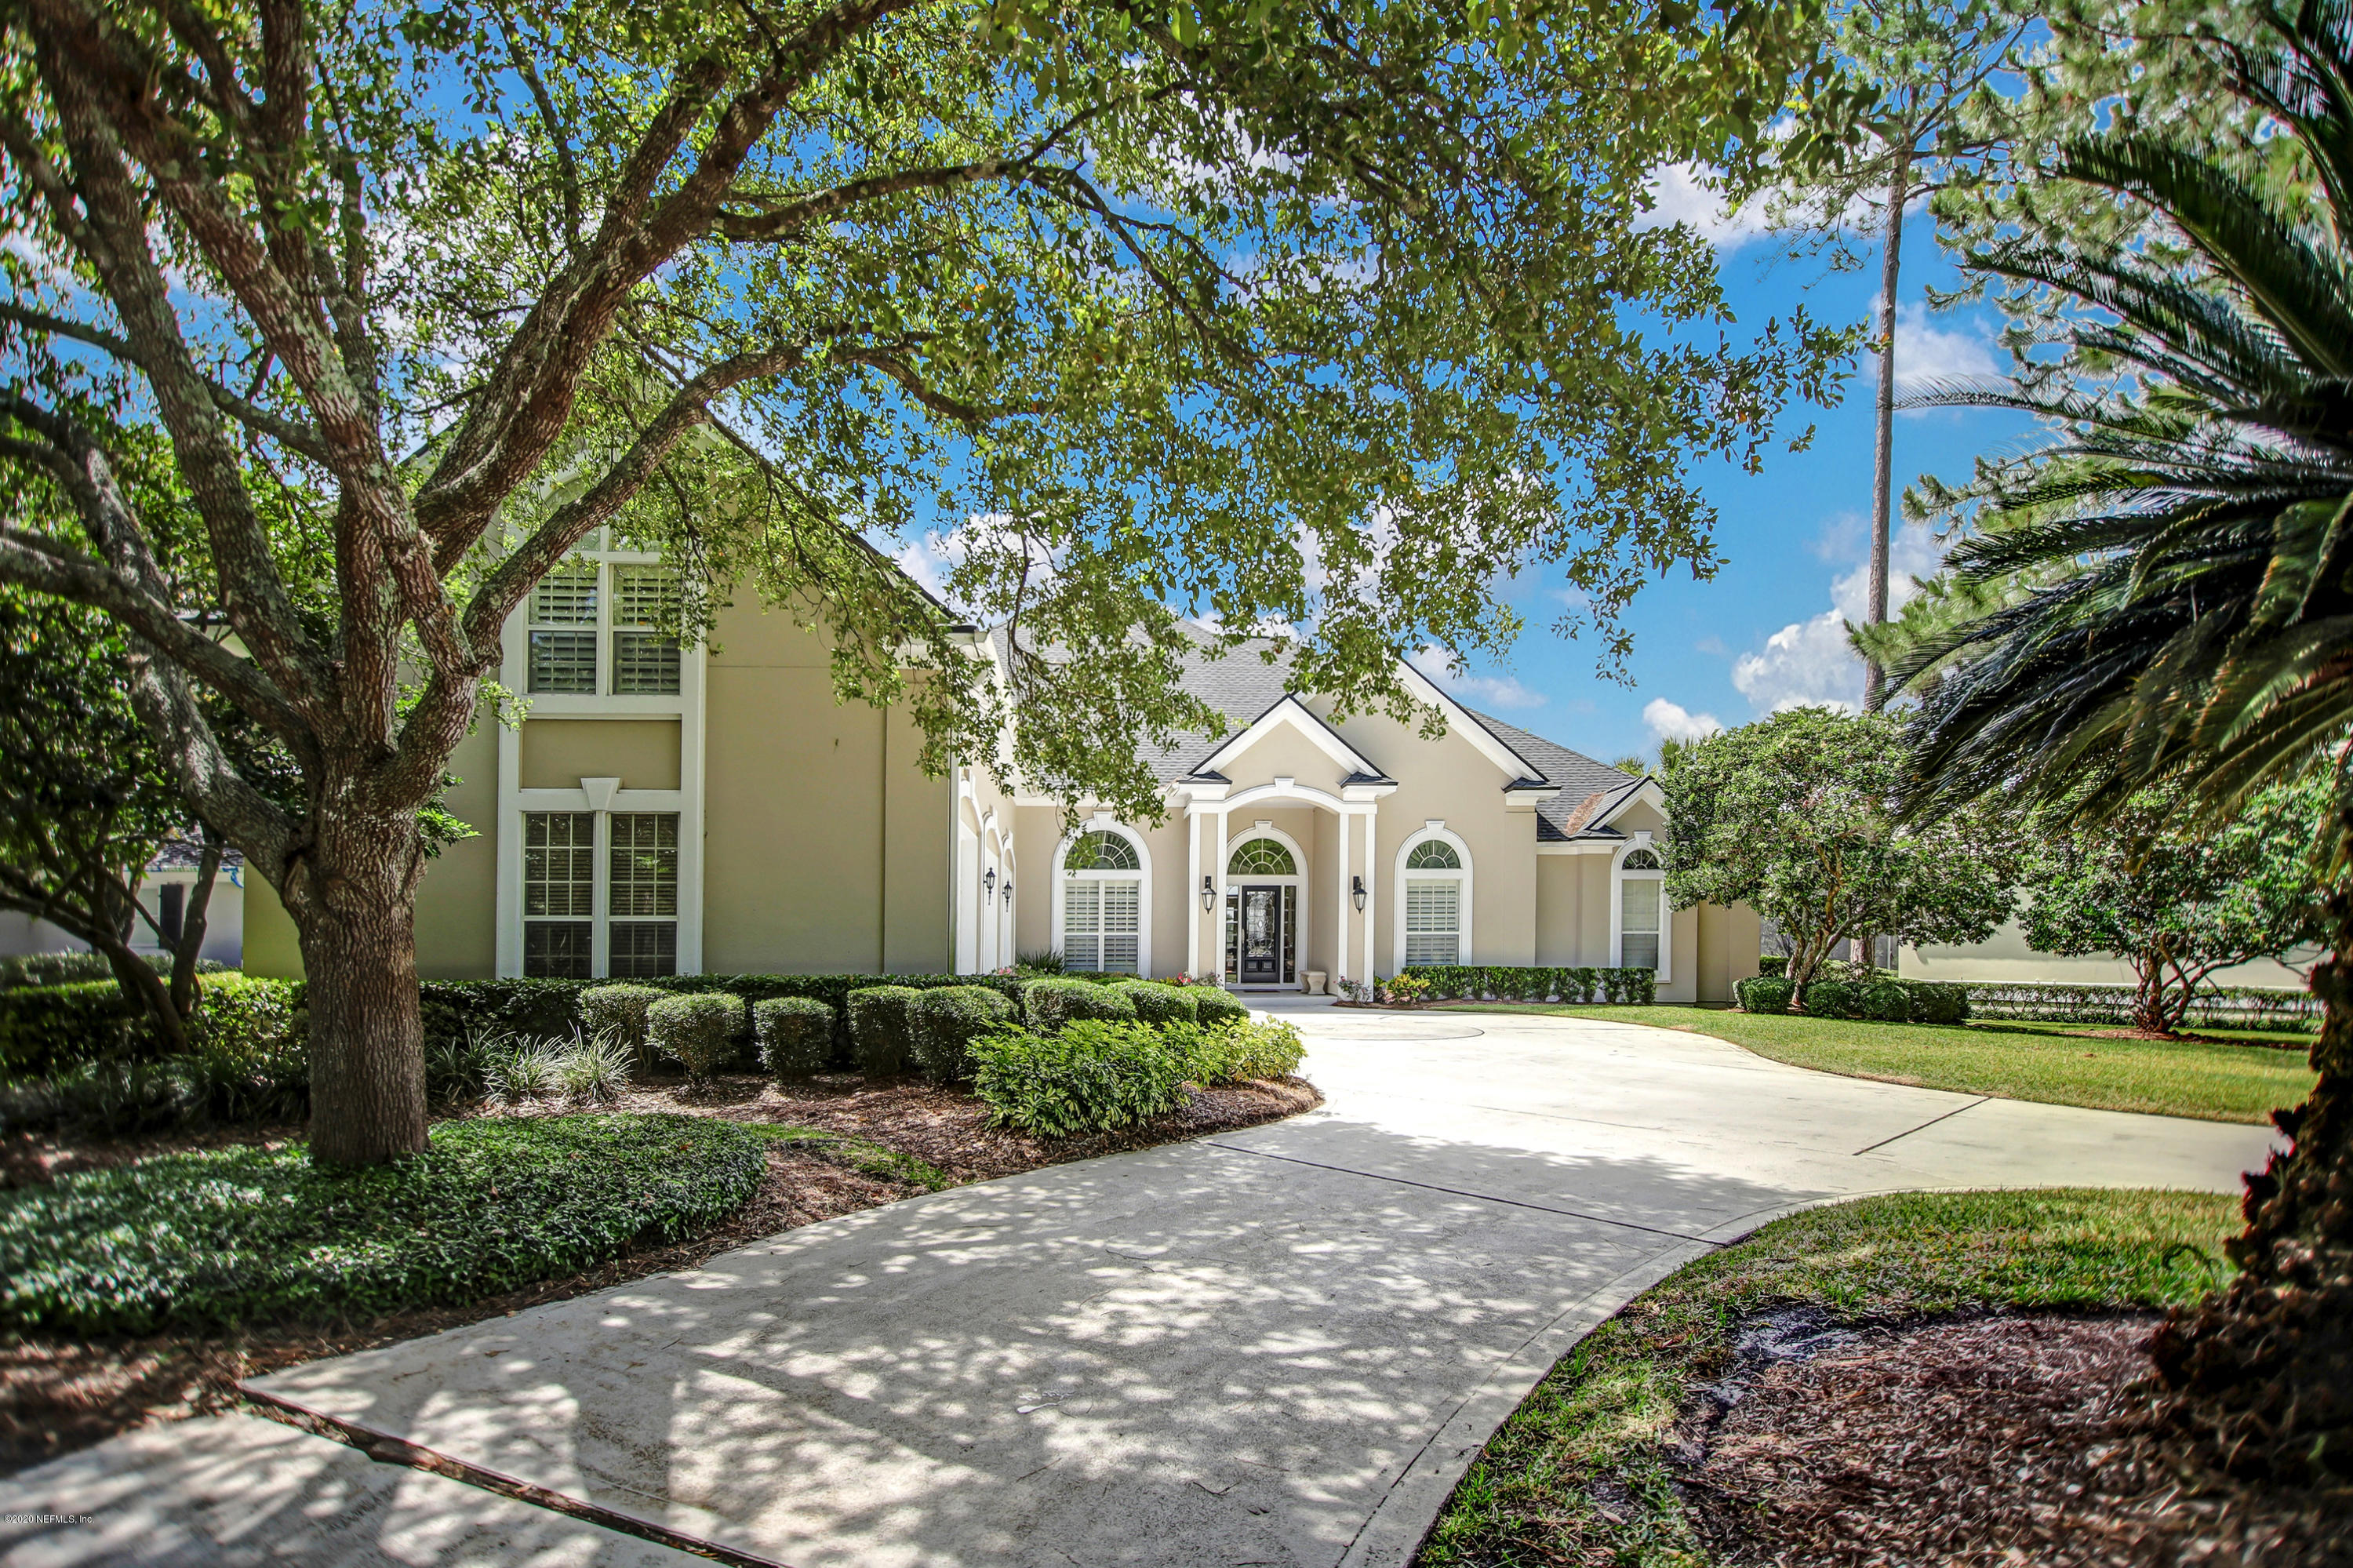 Property for sale at 183 BRIDLE WAY, Ponte Vedra Beach,  Florida 32082